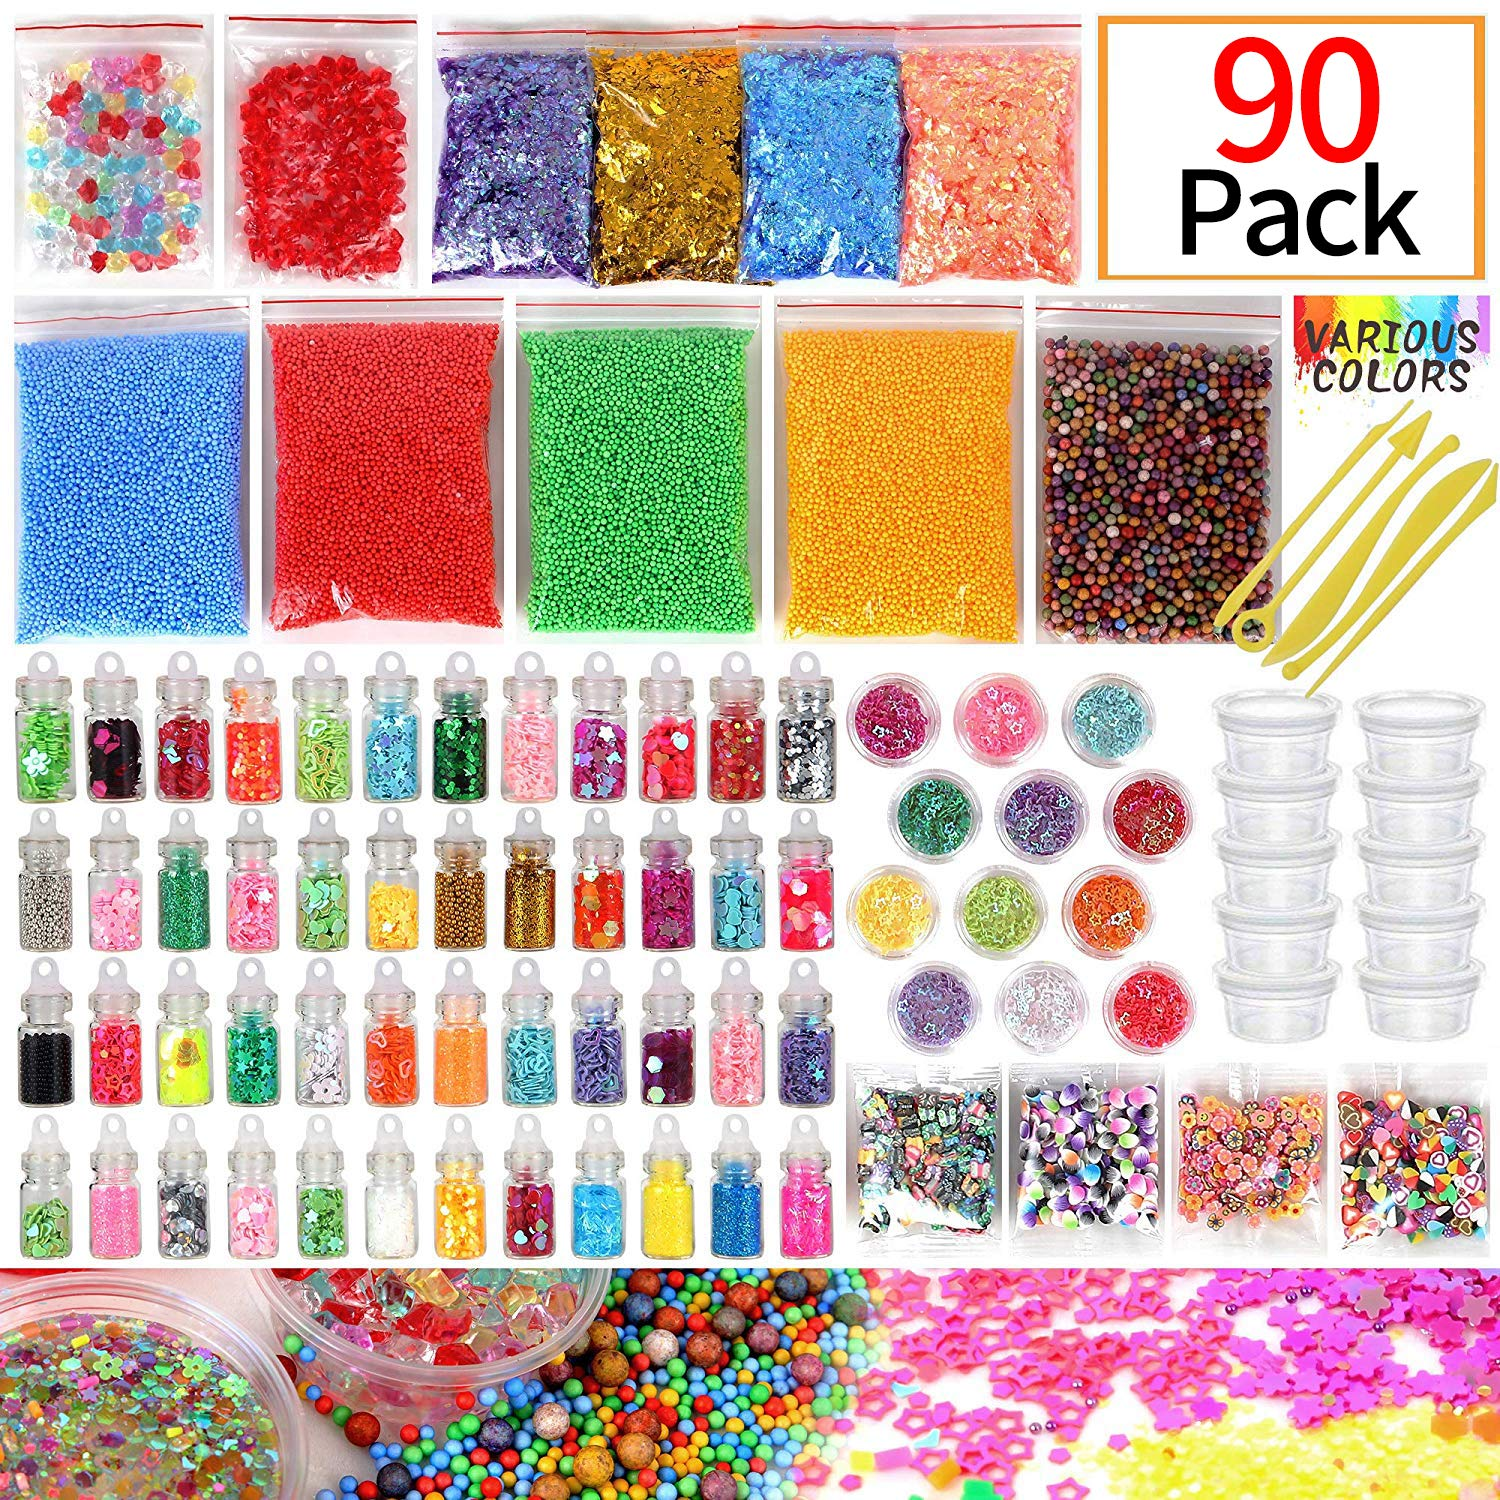 Slime Supplies Kit, 90 Pack Slime Beads Charms, Include Fishbowl Beads, Foam Balls, Glitter Jars, Drop Water Plum Blossom Love Smiley face Slices, Simulation Ice, Colorful Foam Beads, Slime Tools PITAYA